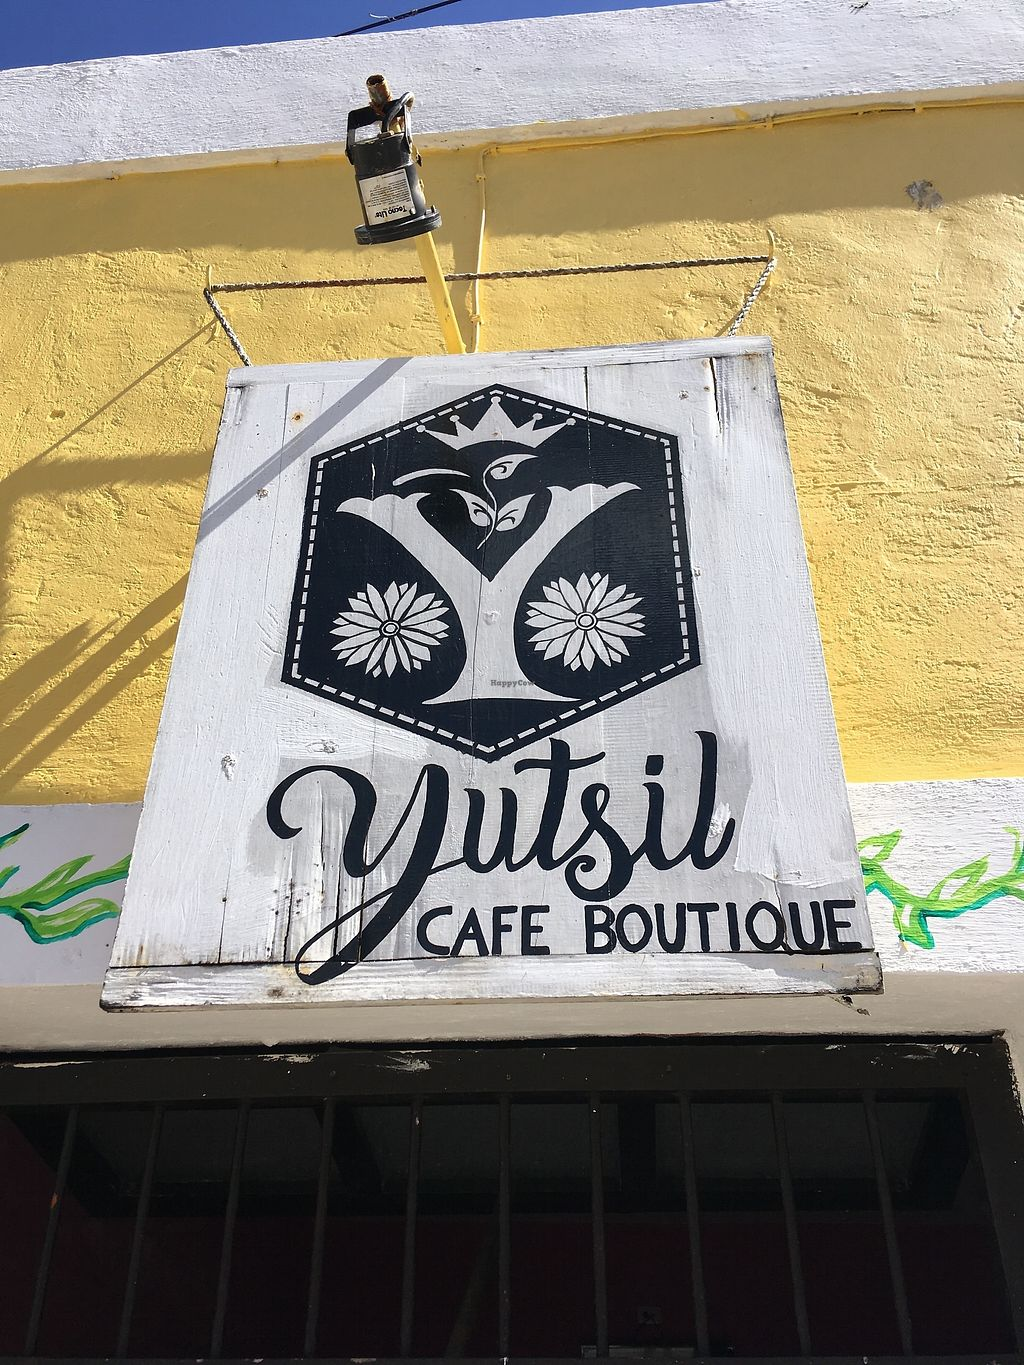 """Photo of Yutsil Cafe Boutique  by <a href=""""/members/profile/Hellavegan"""">Hellavegan</a> <br/>Streetsign <br/> March 31, 2018  - <a href='/contact/abuse/image/116163/379093'>Report</a>"""